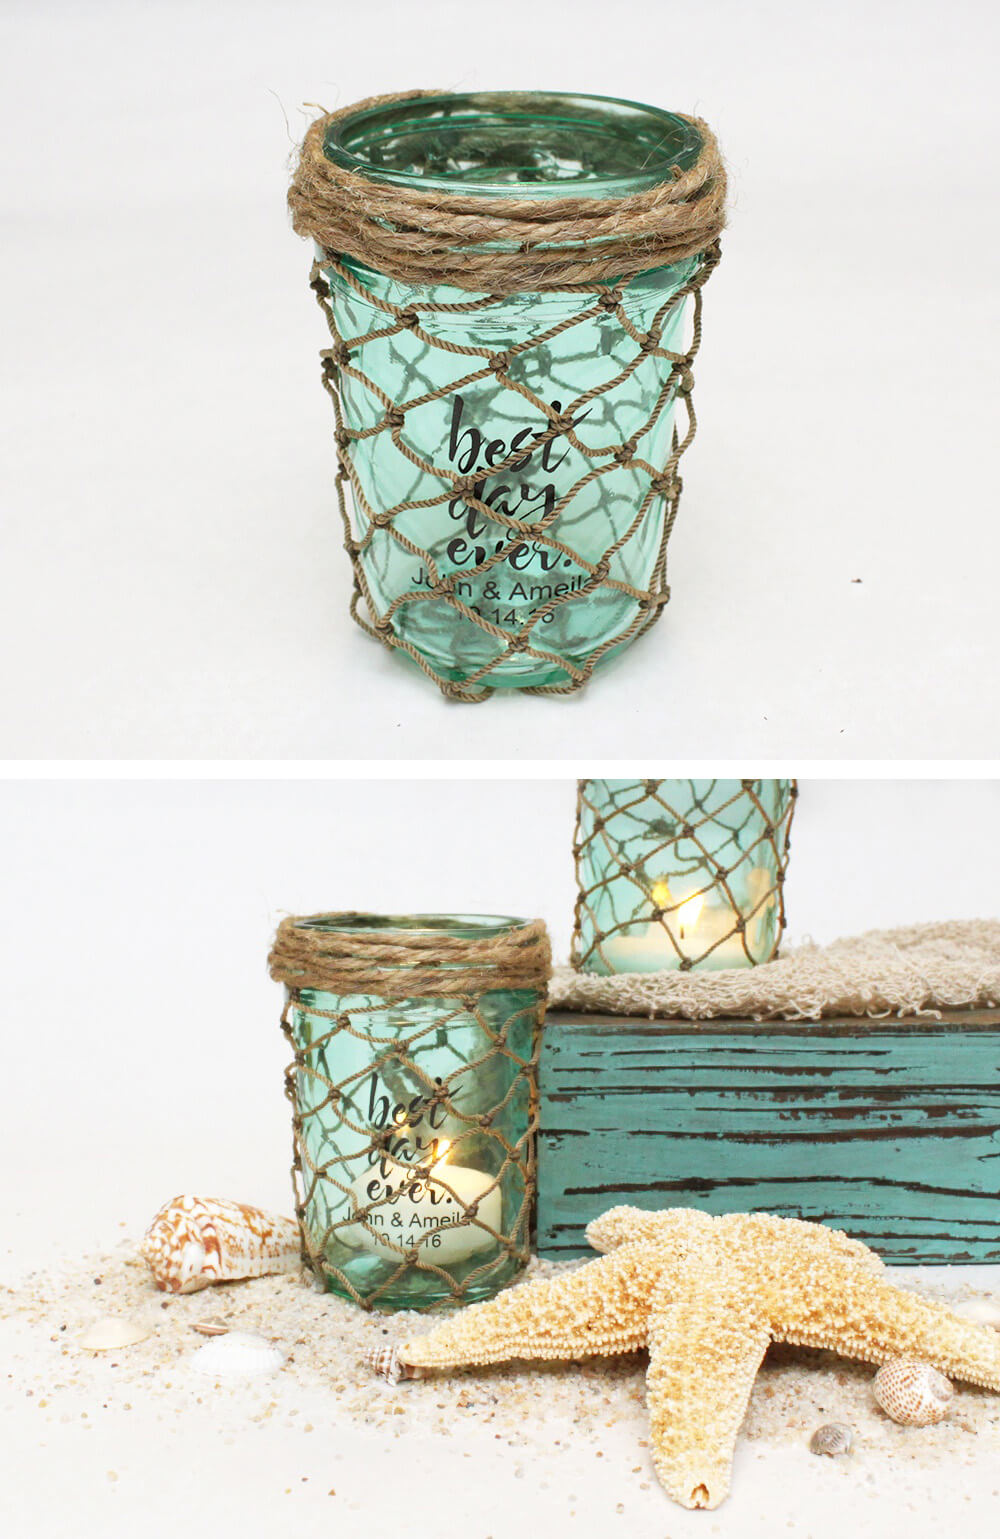 Cargo Netted Candle Holders on Sandy Driftwood